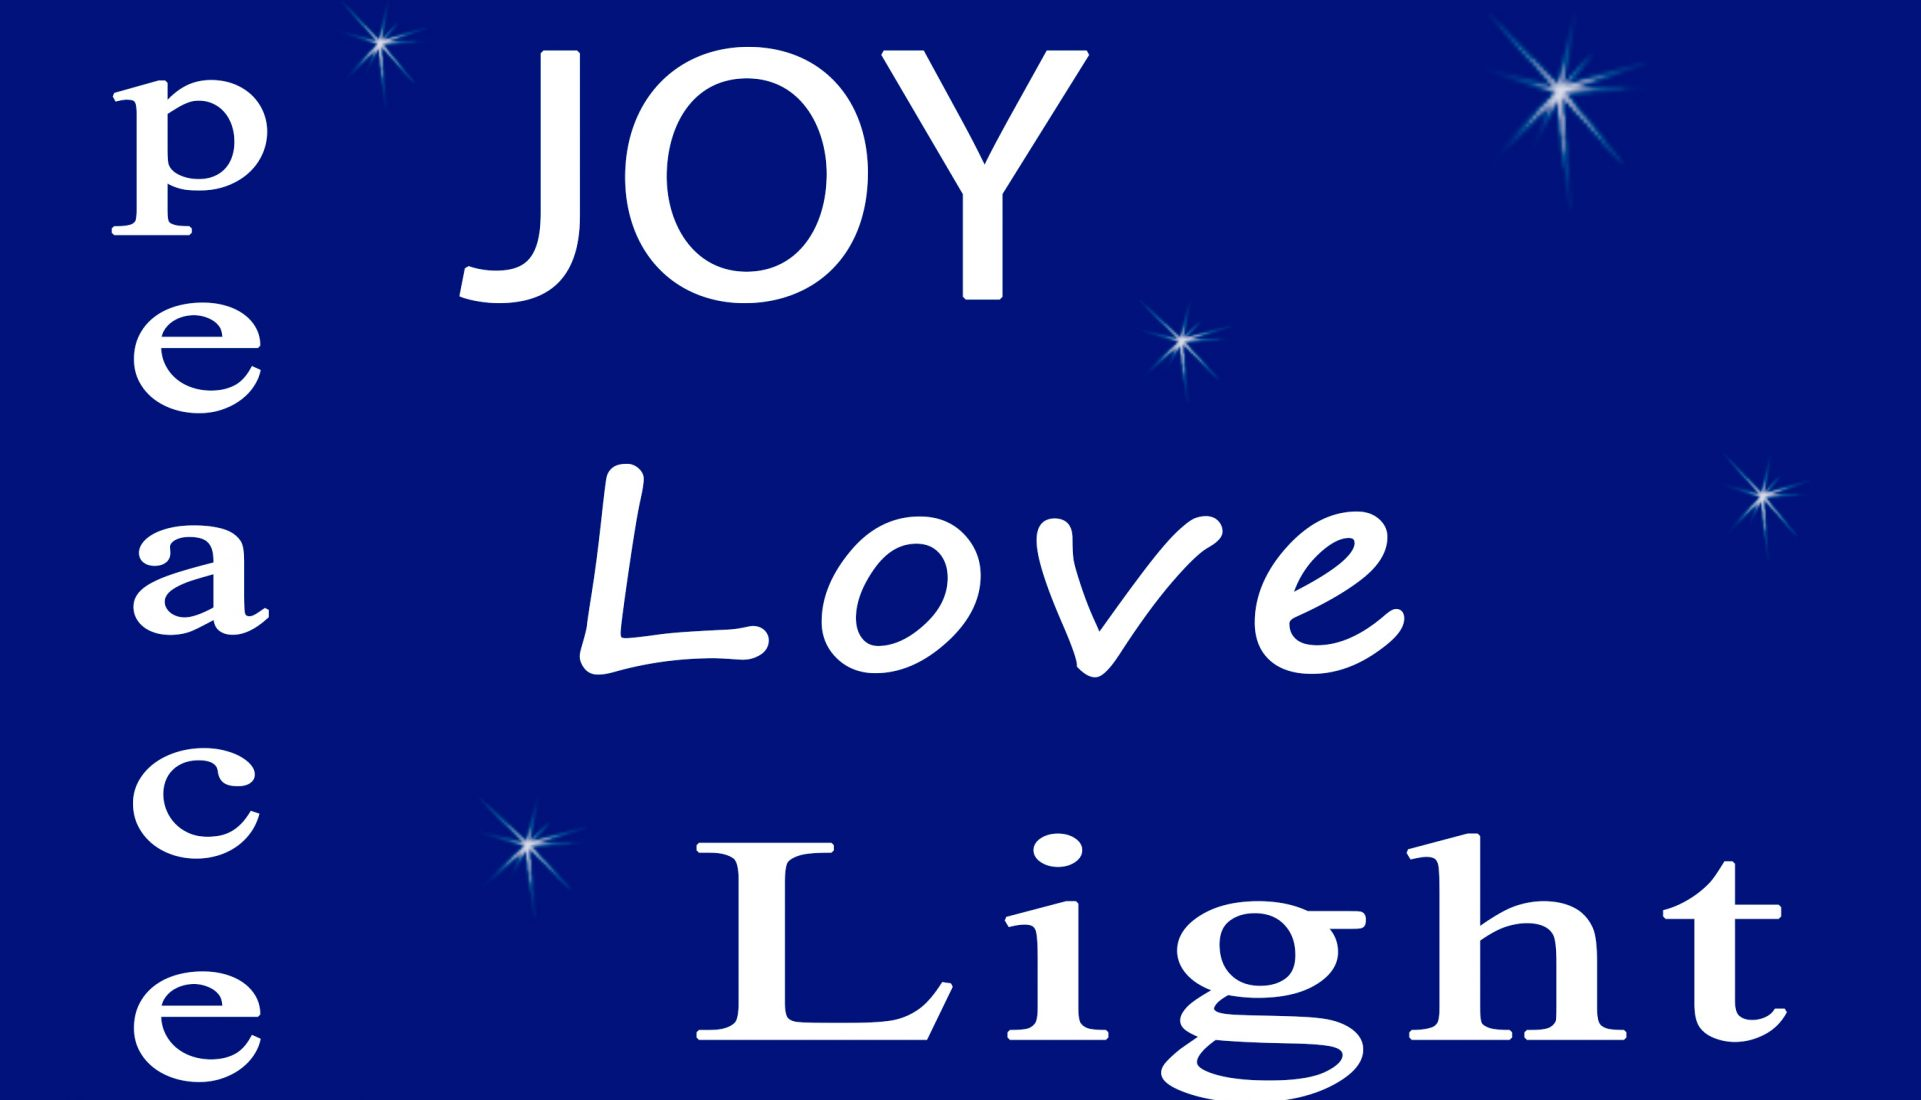 Peace, Joy, Love and Light